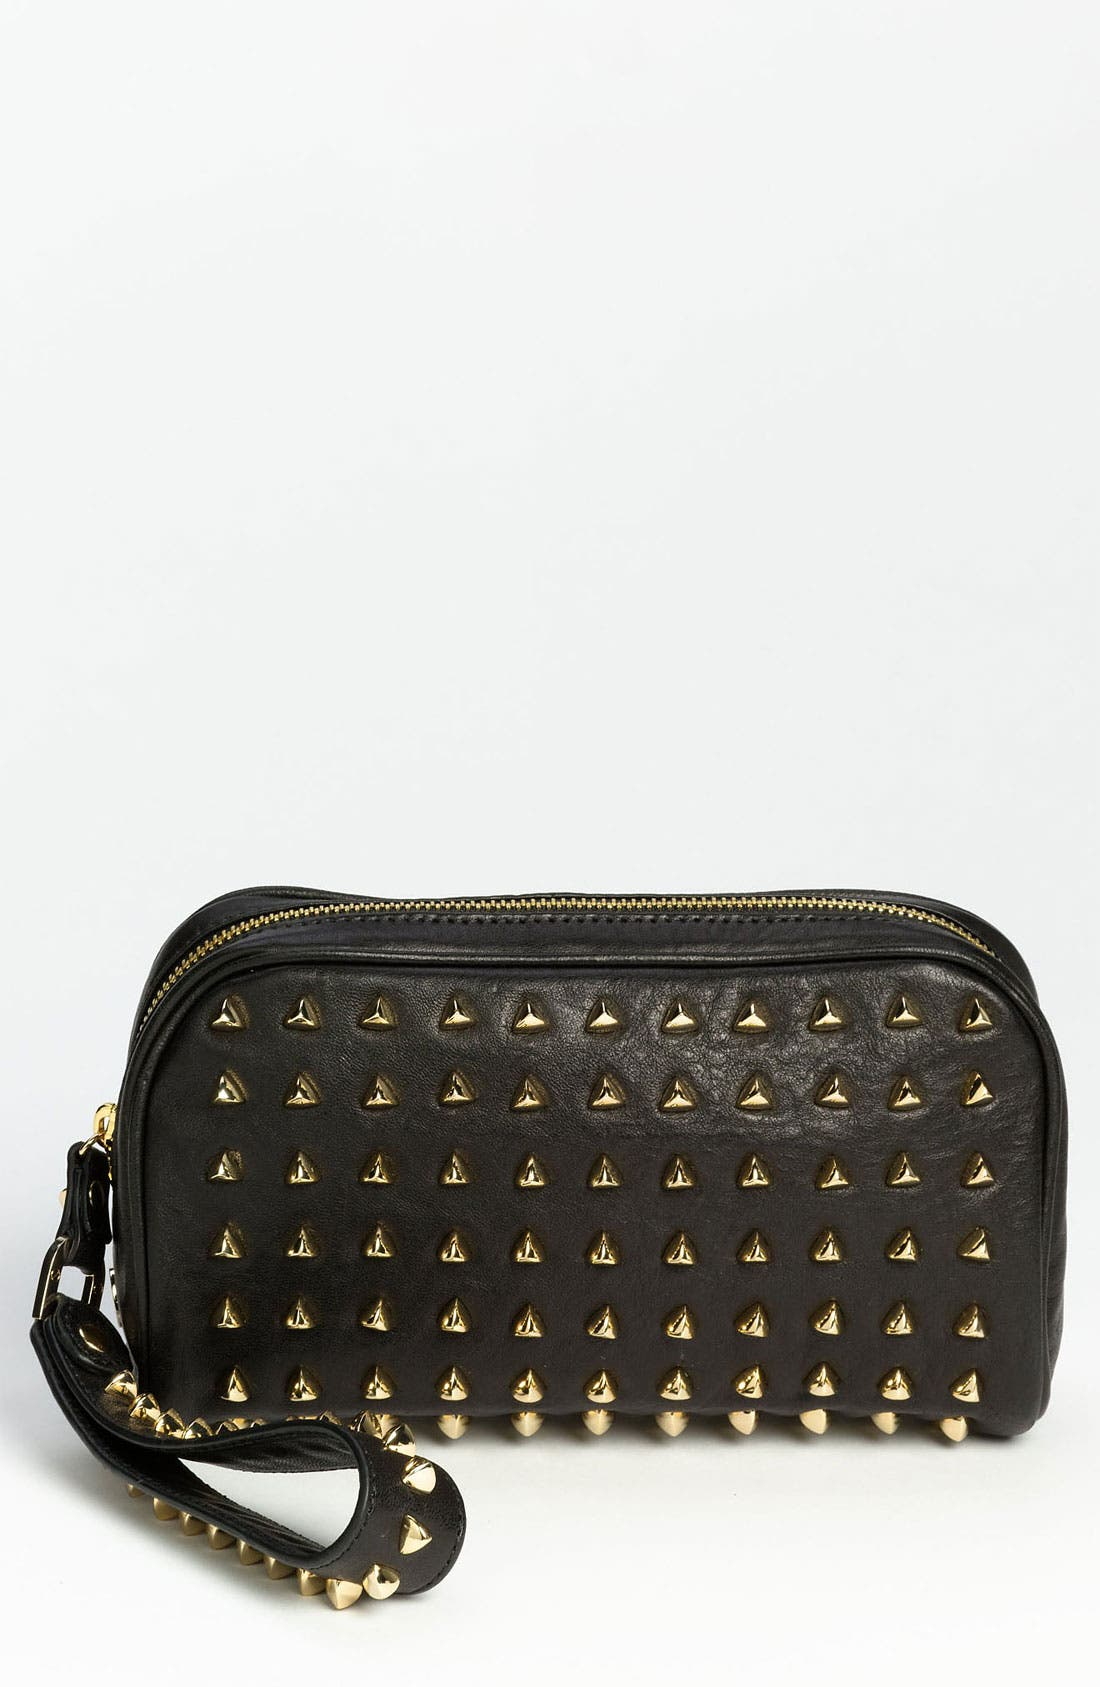 Alternate Image 1 Selected - Tory Burch Pyramid Stud Clutch